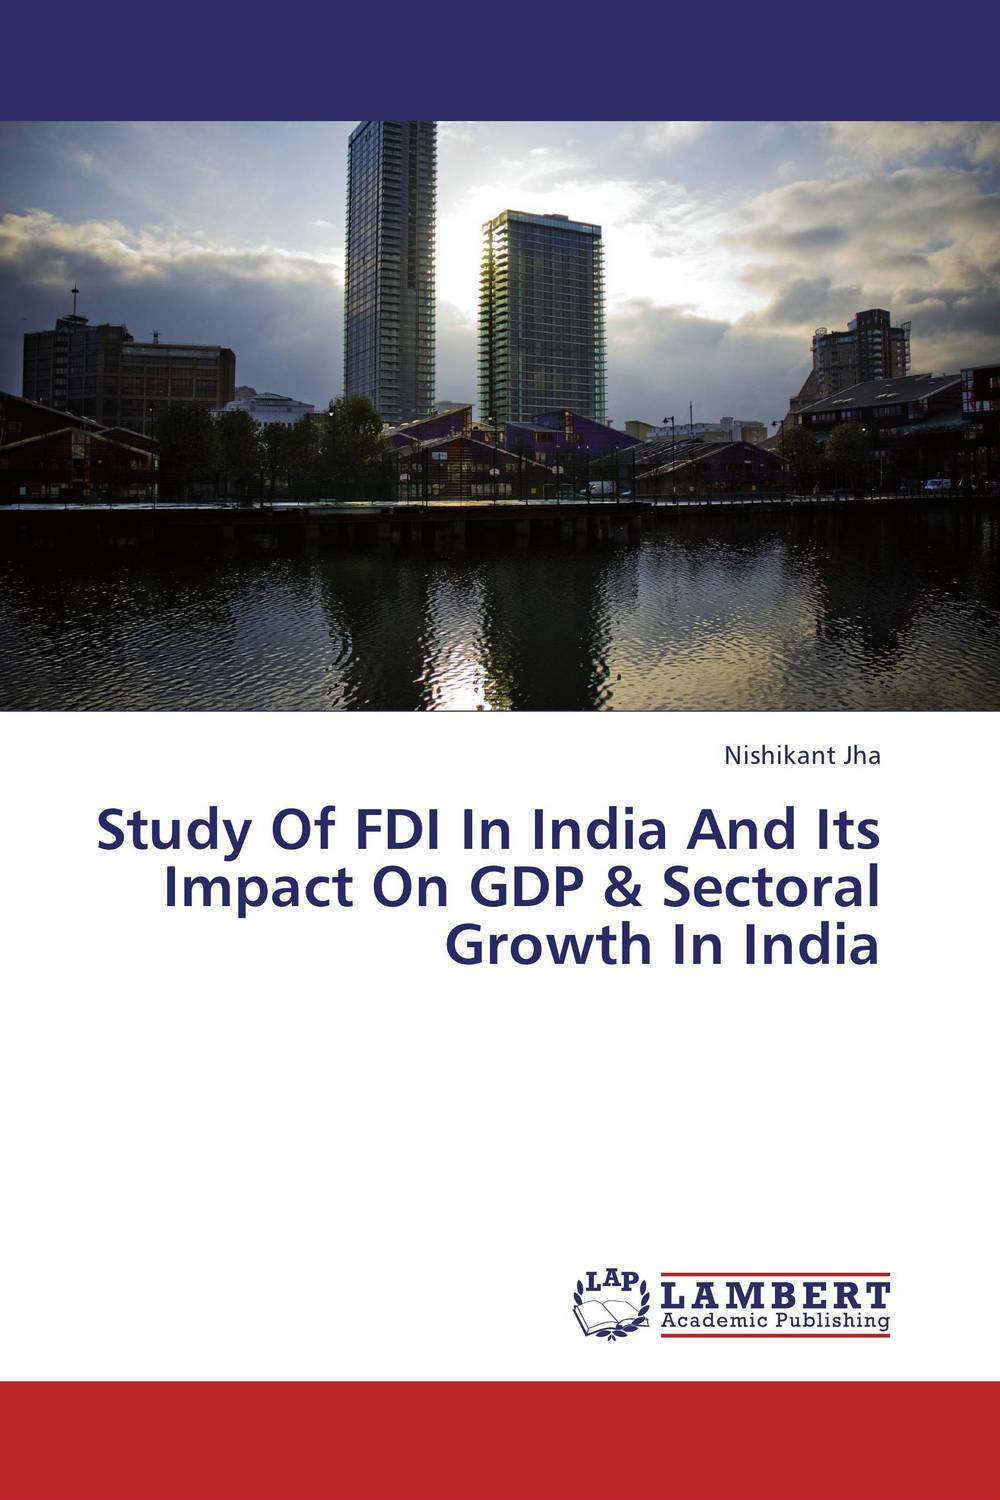 Study Of FDI In India And Its Impact On GDP & Sectoral Growth In India салфетки heart of india 200 5